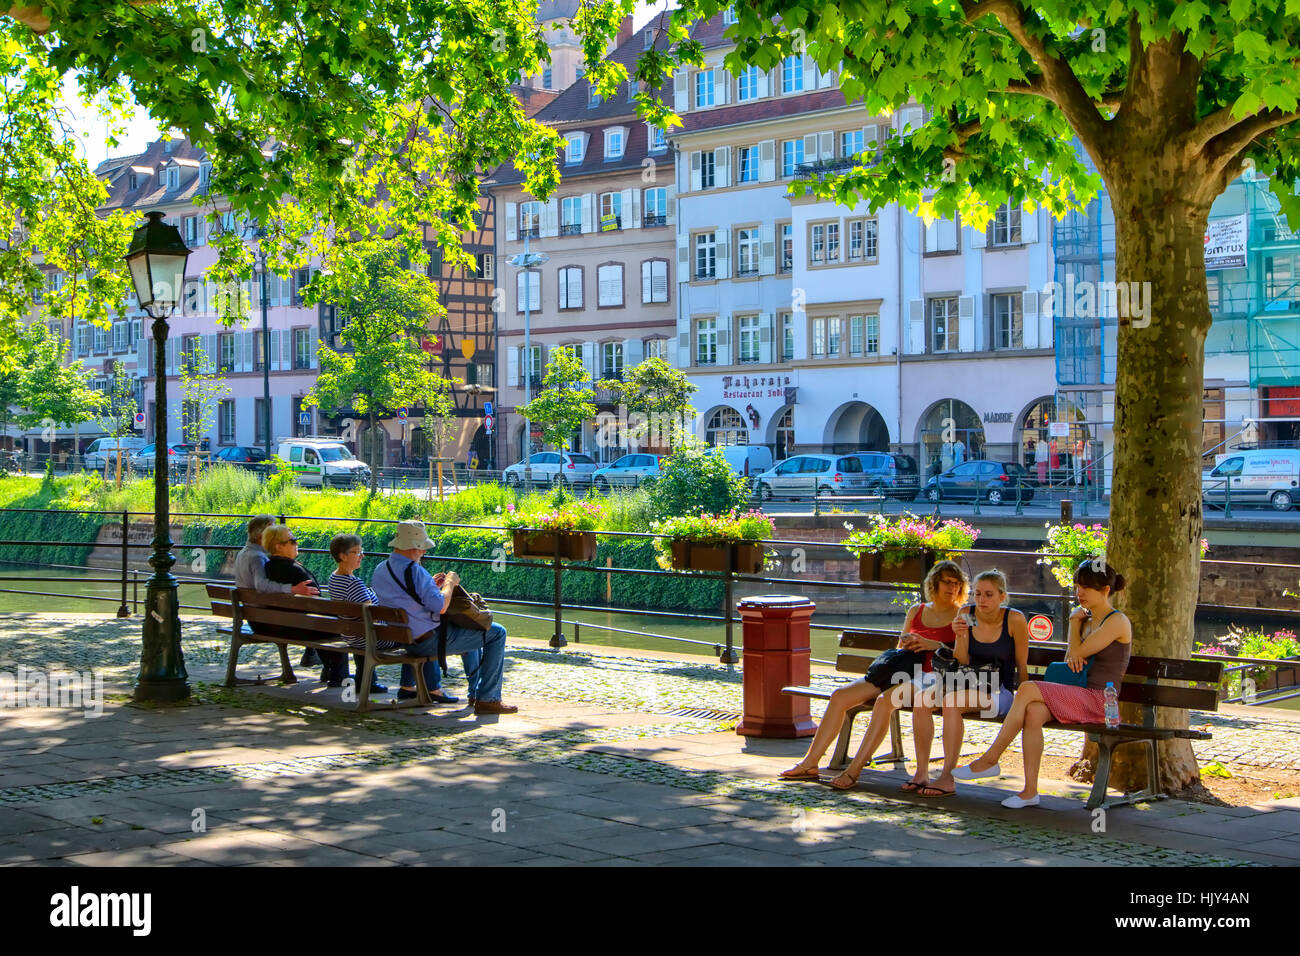 Houses along river Ill in Strasbourg - Stock Image